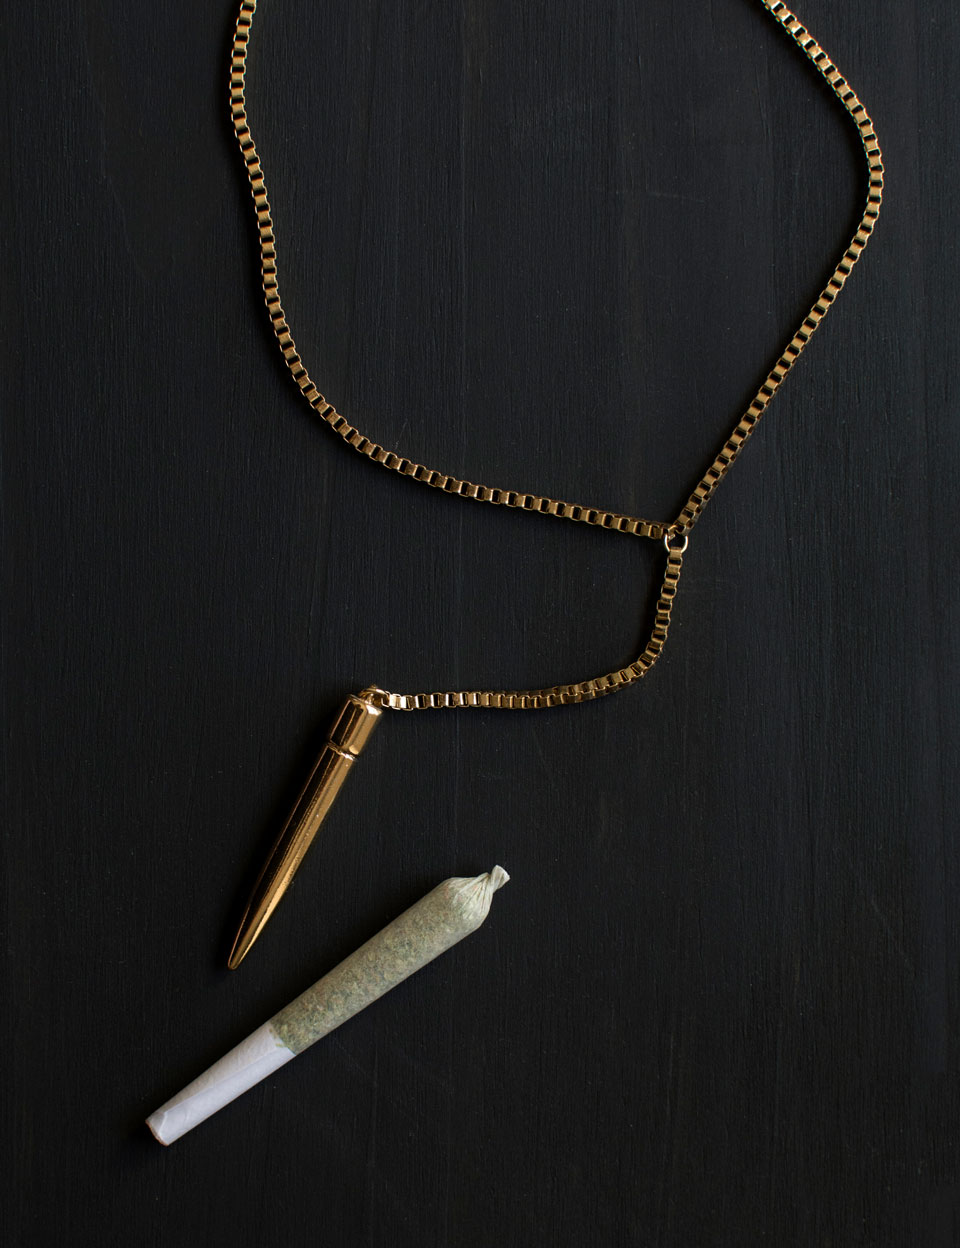 necklace-joint-greenandgold.jpg